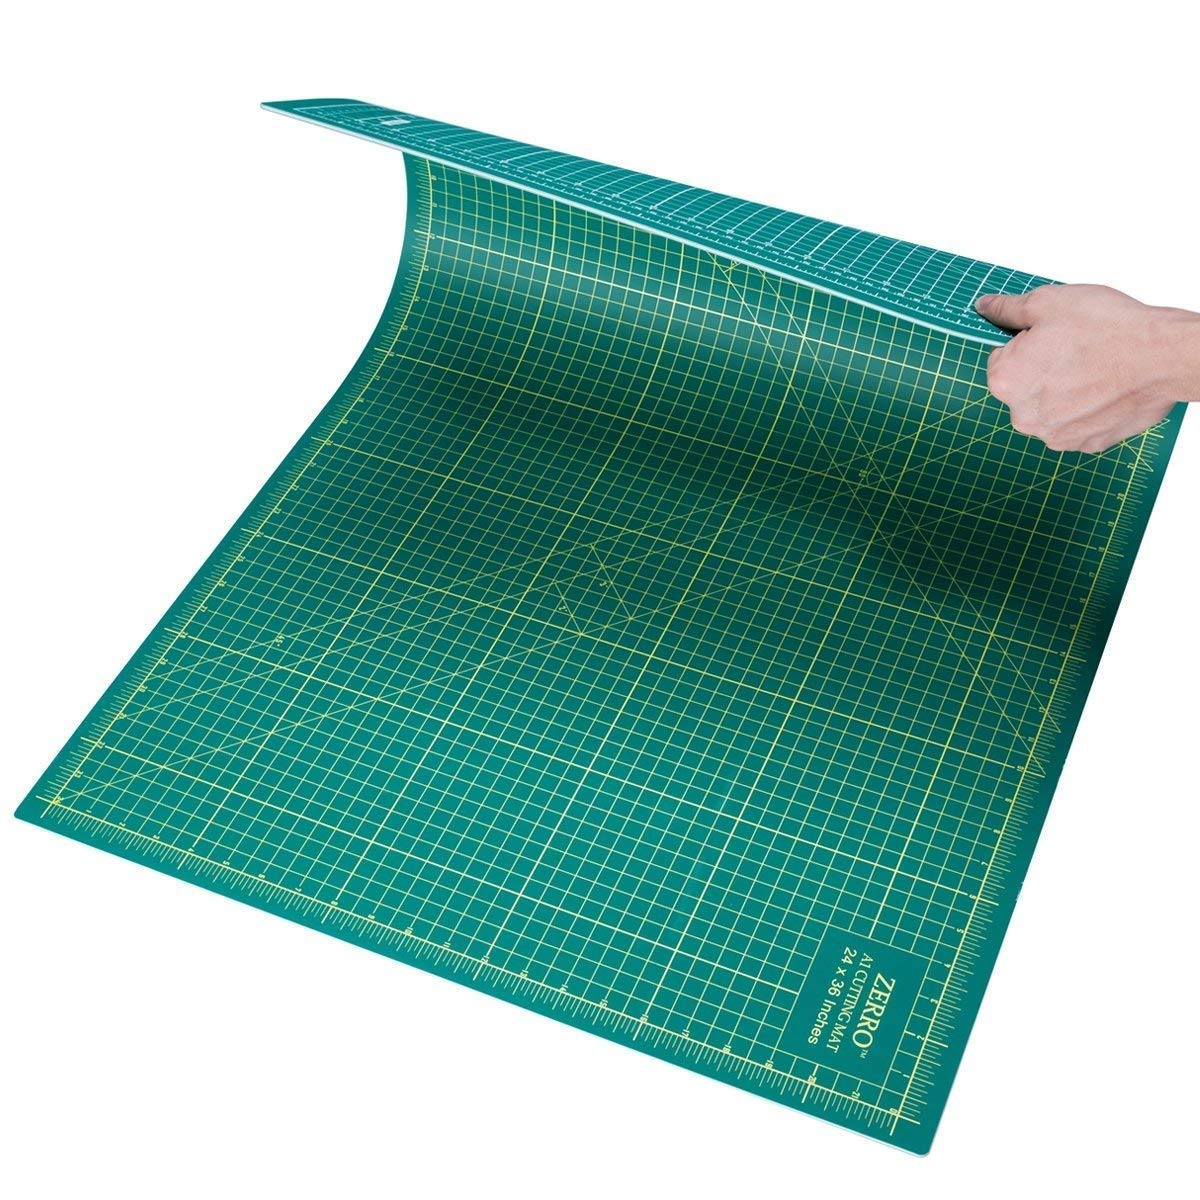 """ZERRO Self Healing Cutting Mat 24"""" x 36"""",Professional Double Sided Durable Non-Slip Rotary Mat for Scrapbooking, Quilting, Sewing-3mm Thick (A1)"""